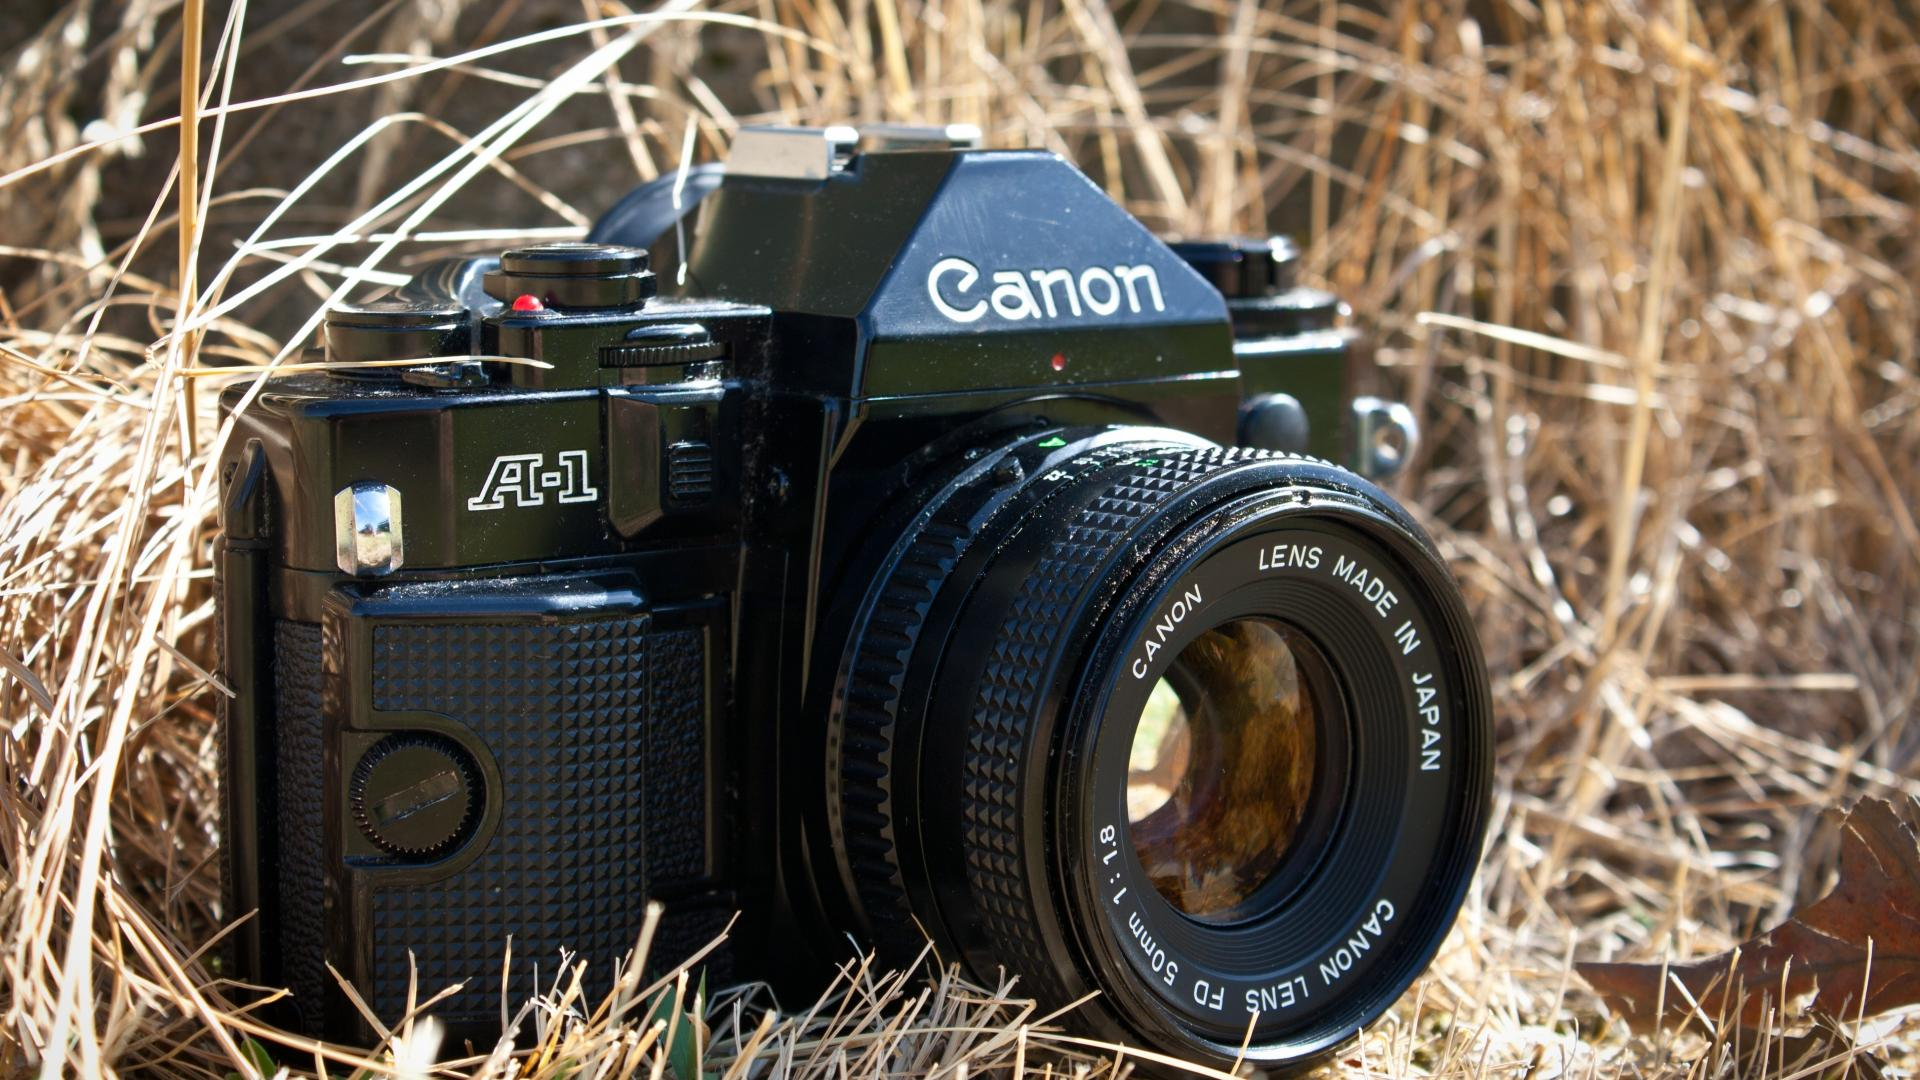 Old canon photo